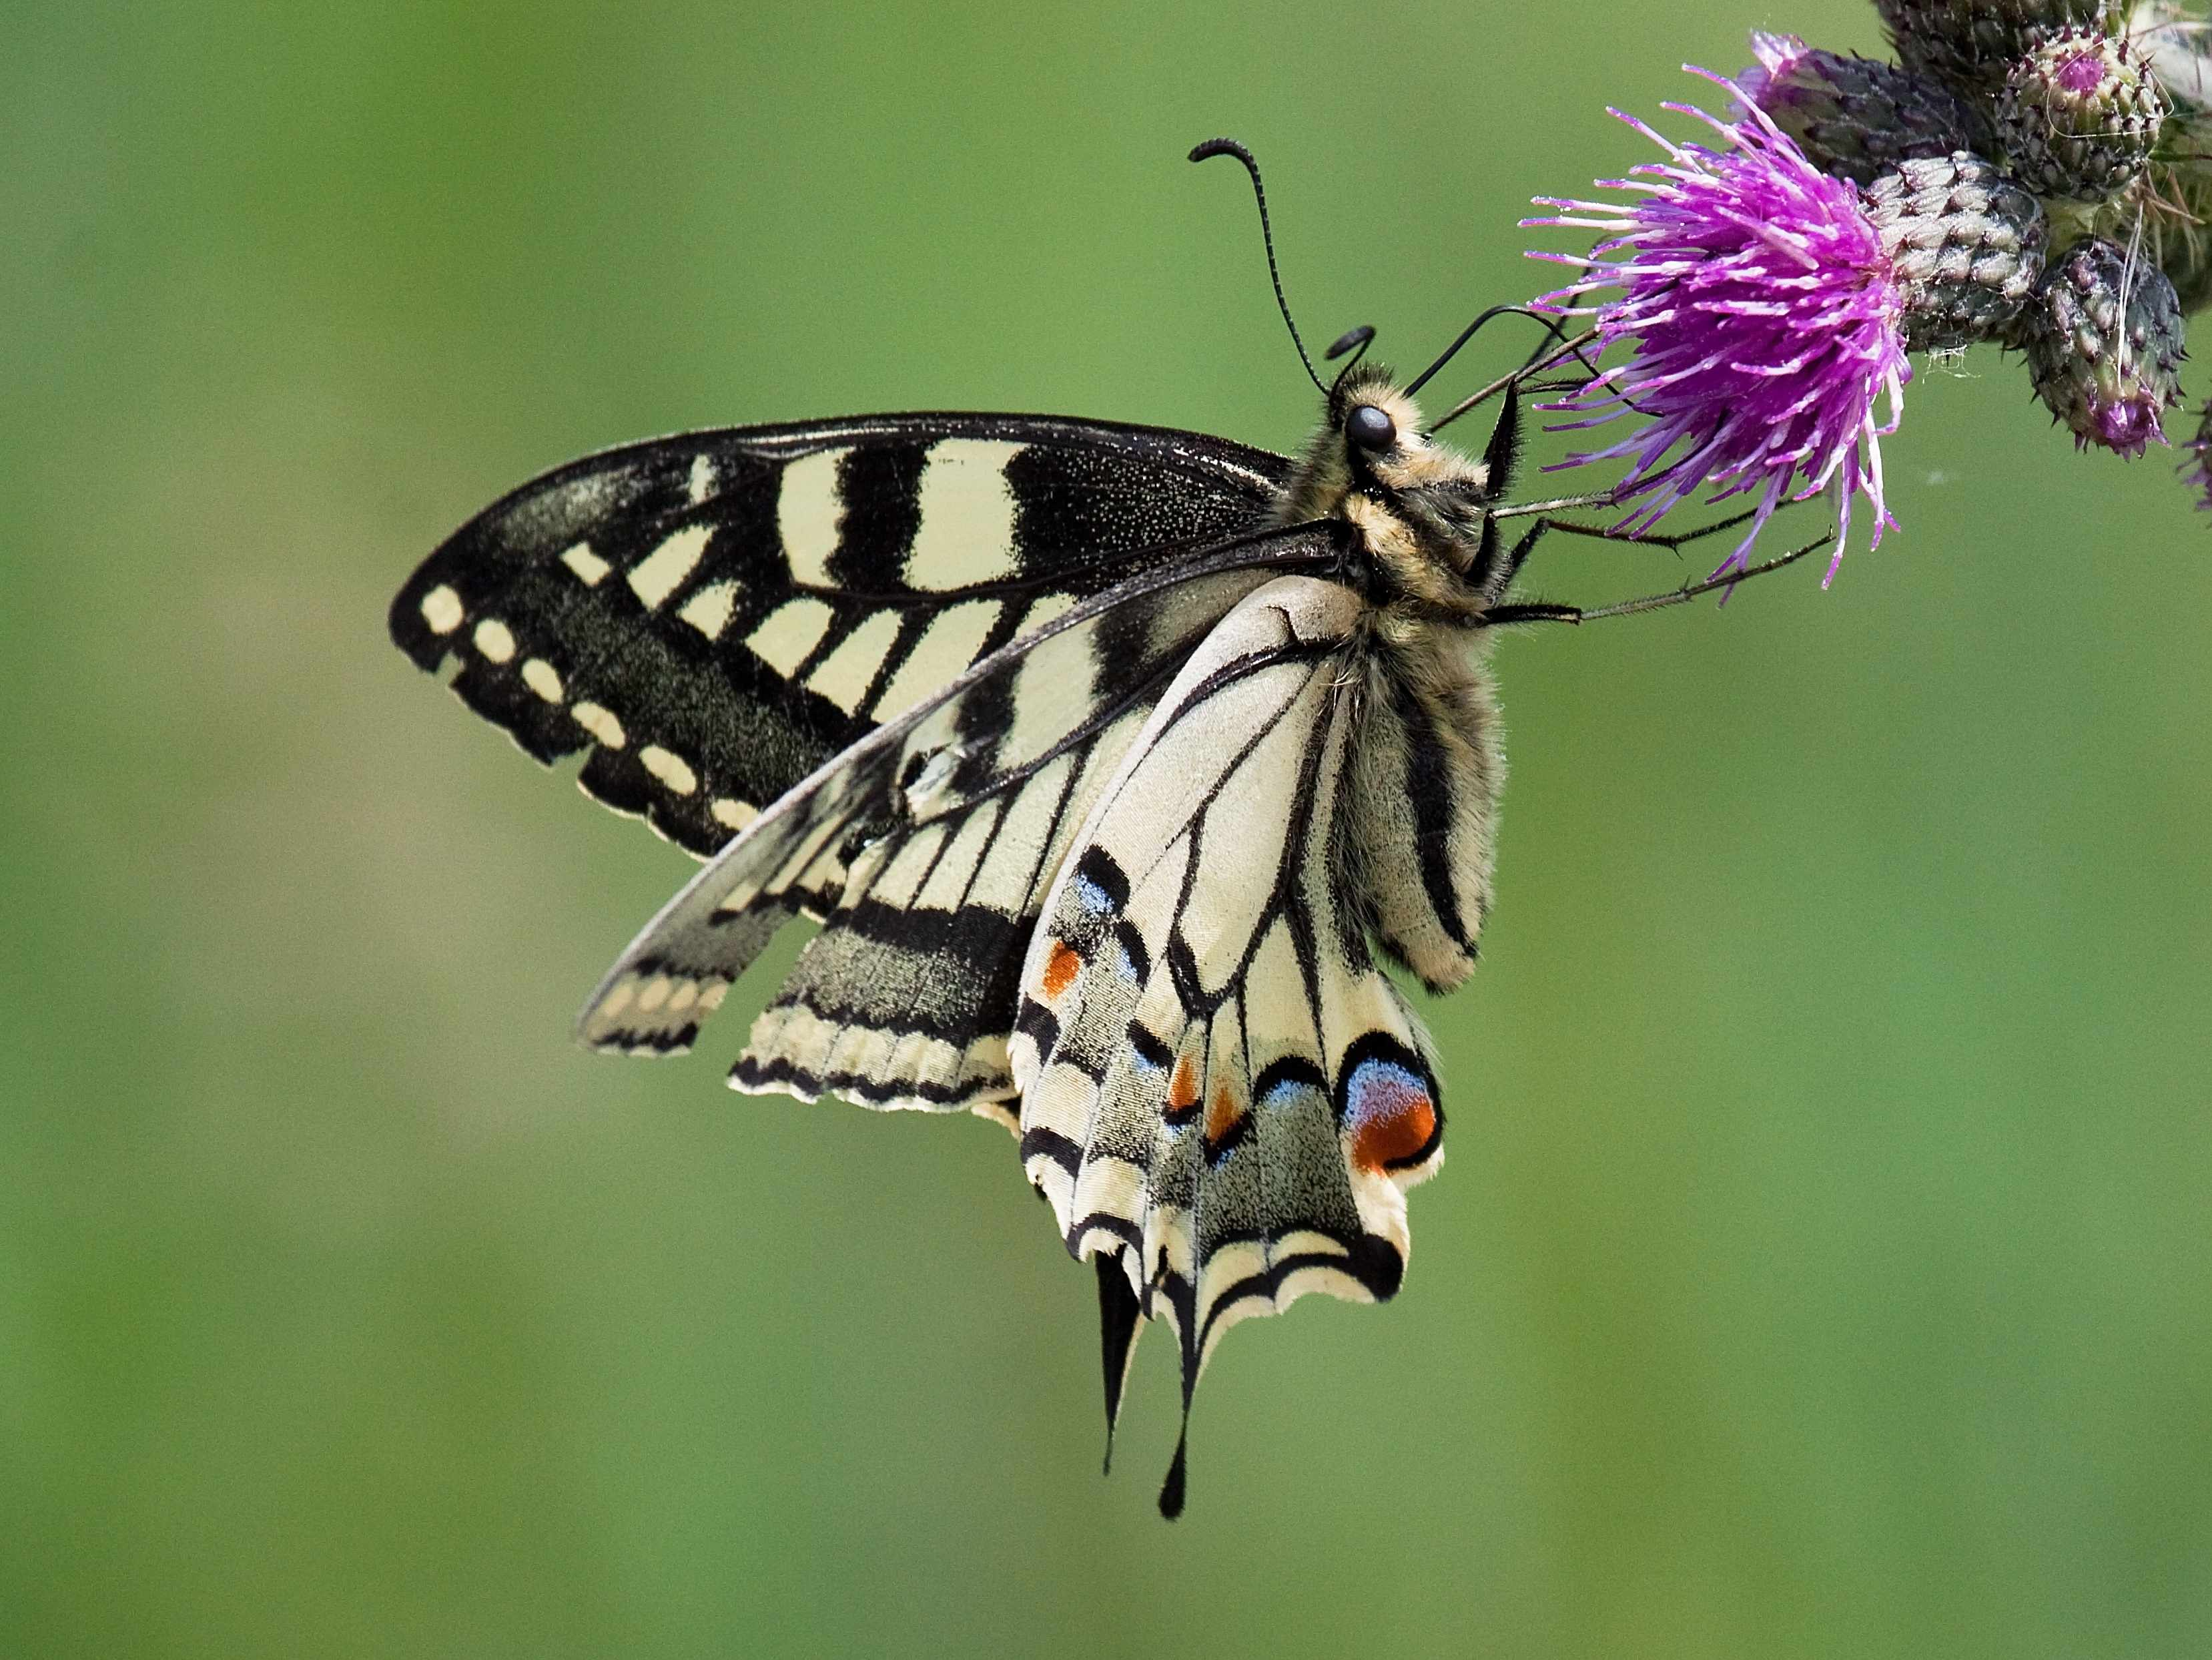 Swallowtail feeding on thistles in Norfolk. © David Martin/Getty